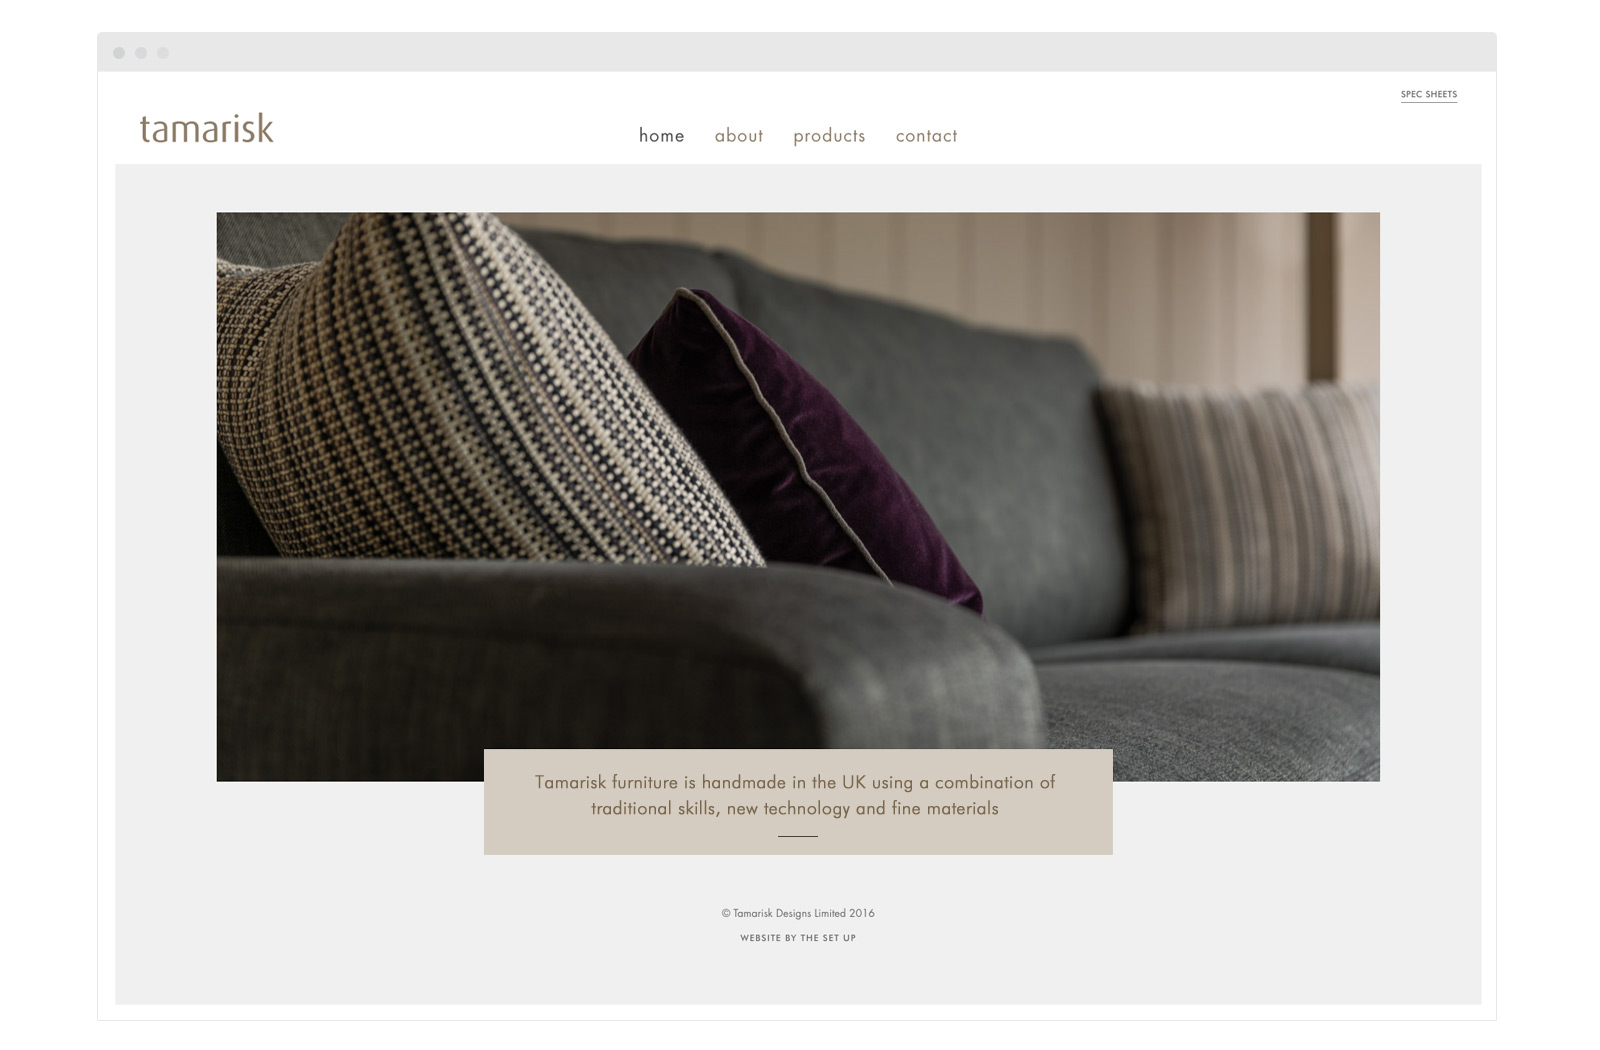 Tamarisk website home page